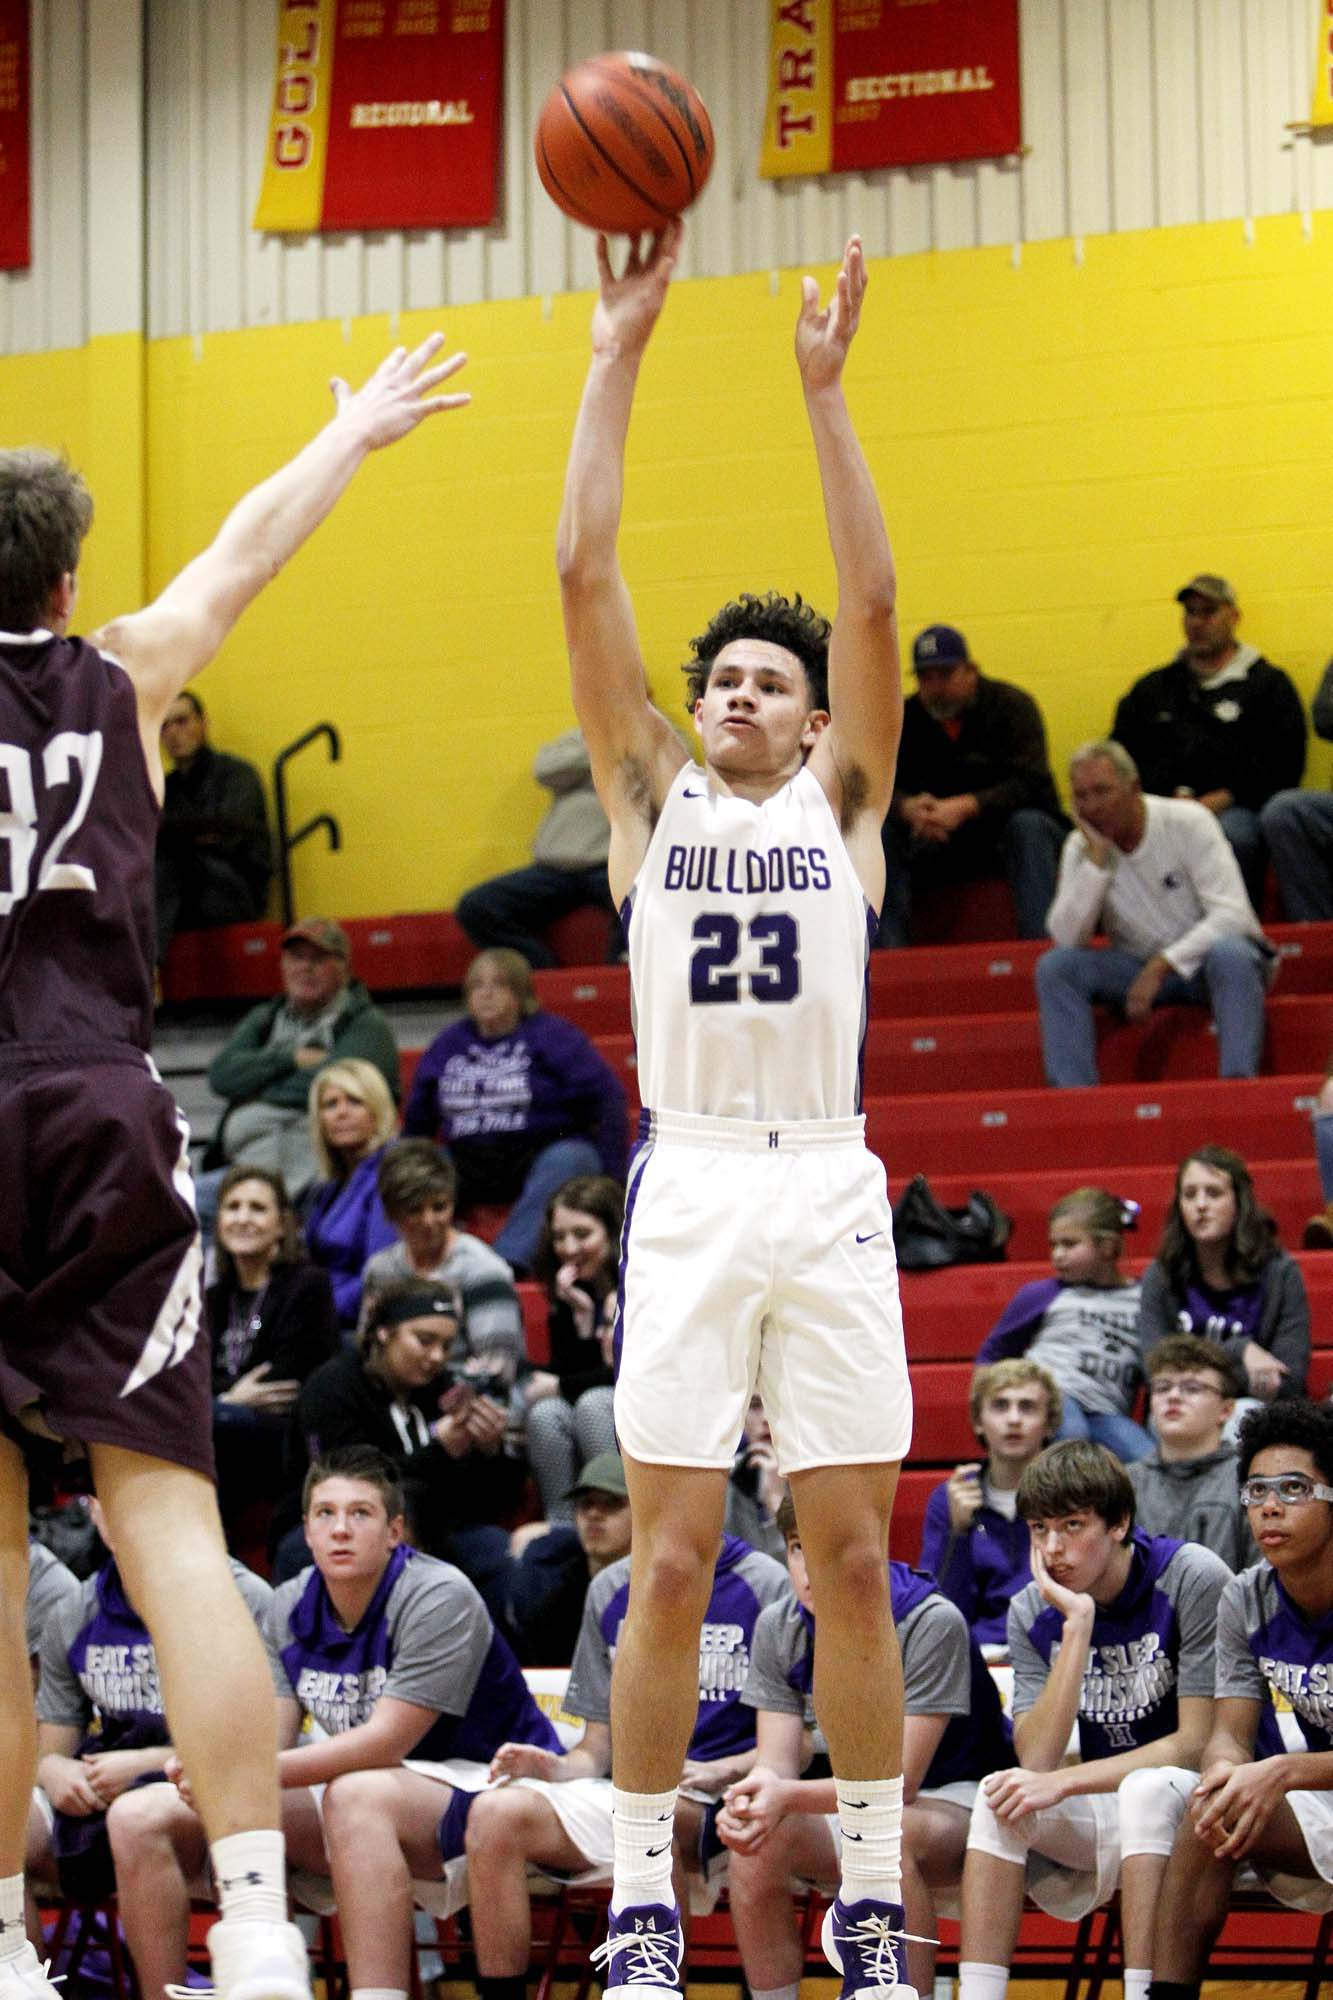 Harrisburg's Isaiah Saulsberry had 31 points in the Bulldogs' 72-60 win over Robinson at Tuesday's IHSA Class 2A Regional semifinal at Lawrenceville. In the game, the senior guard also became HHS' All-Time leading scorer, passing Capel Henshaw for the top spot.